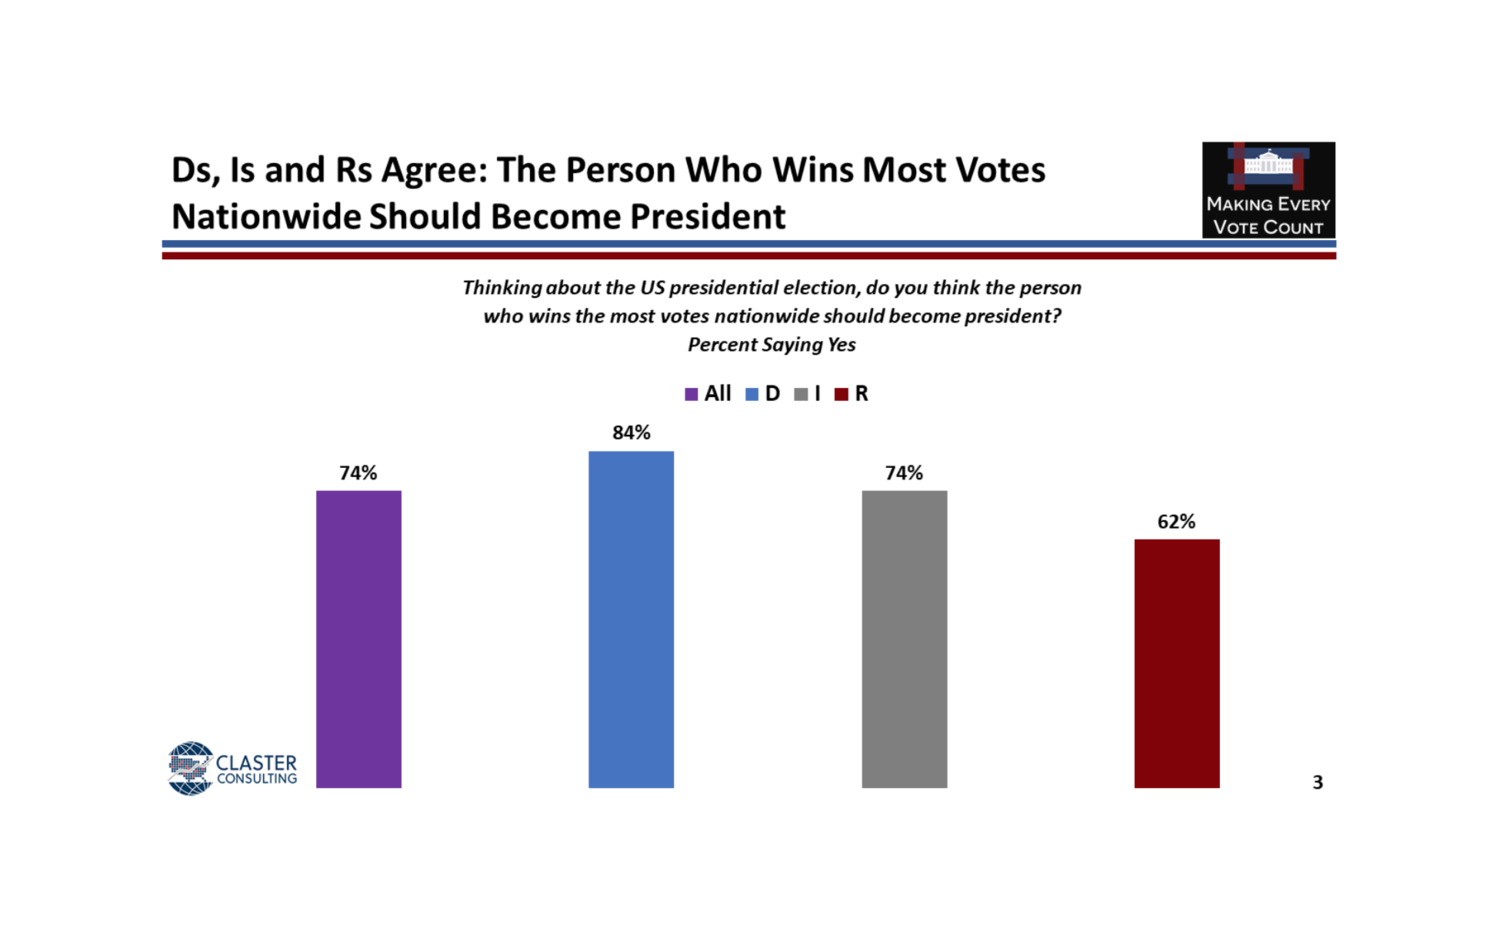 Poll Shows Majority of Americans would Prefer a National